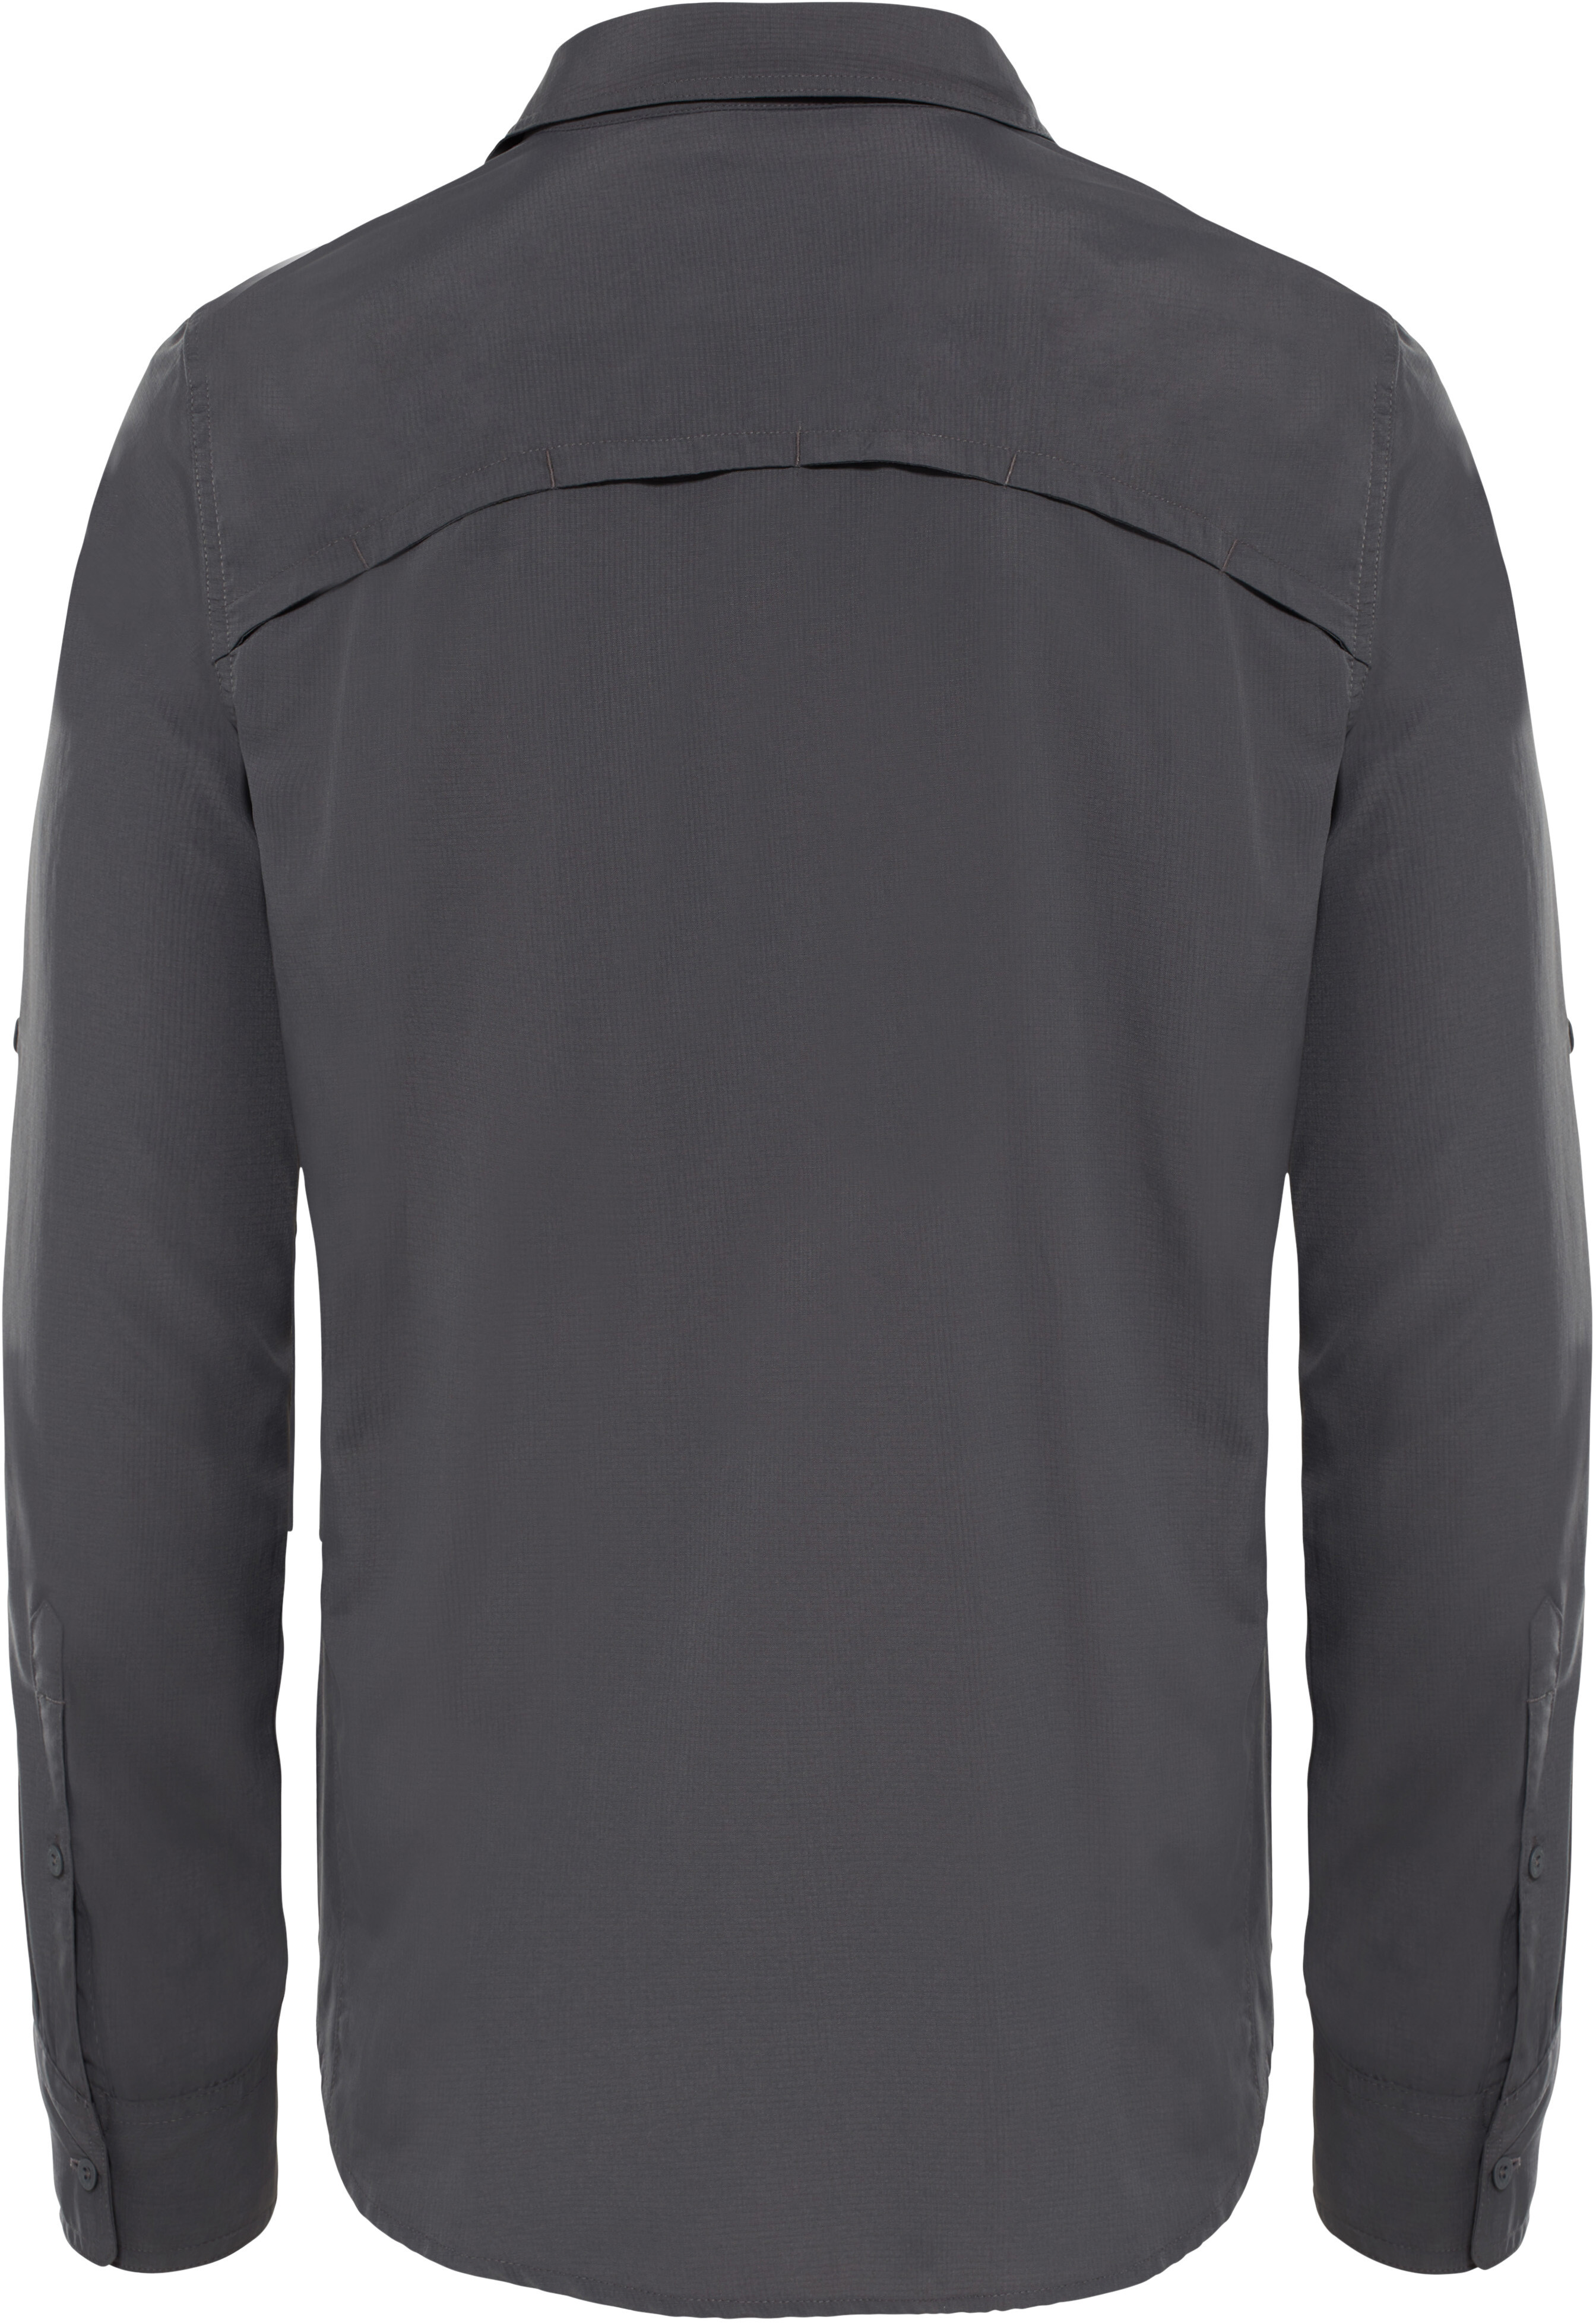 034729dd95aed The North Face Sequoia - T-shirt manches longues Homme - gris sur ...